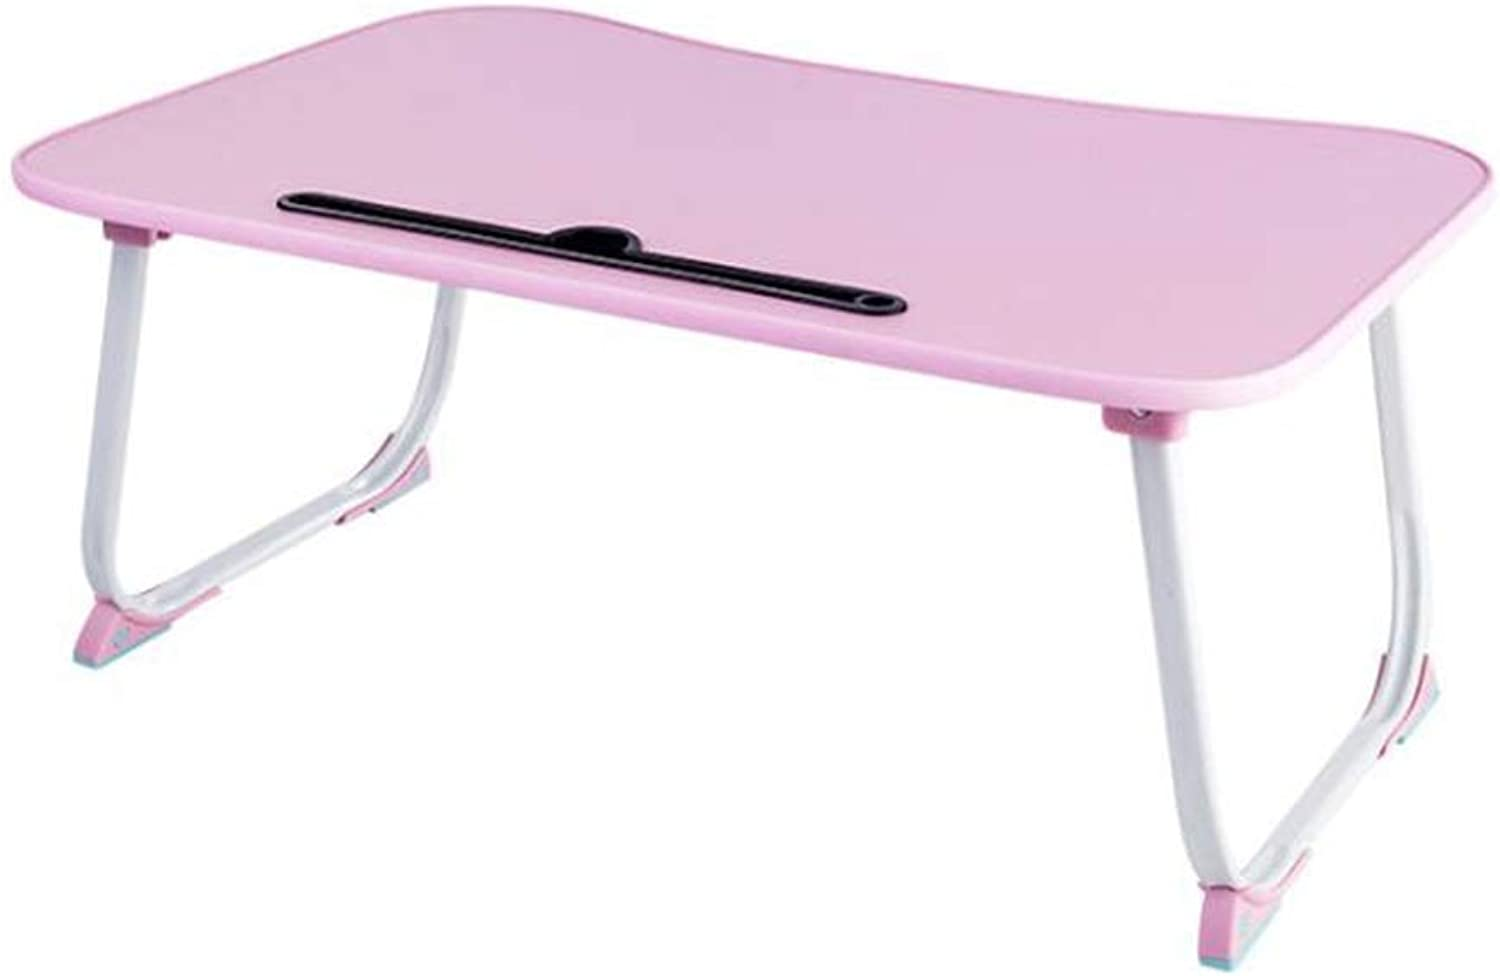 Laptop Stand Bed Table, Lazy Foldable Side Table Ortable Mobile Computer Desk, Pink